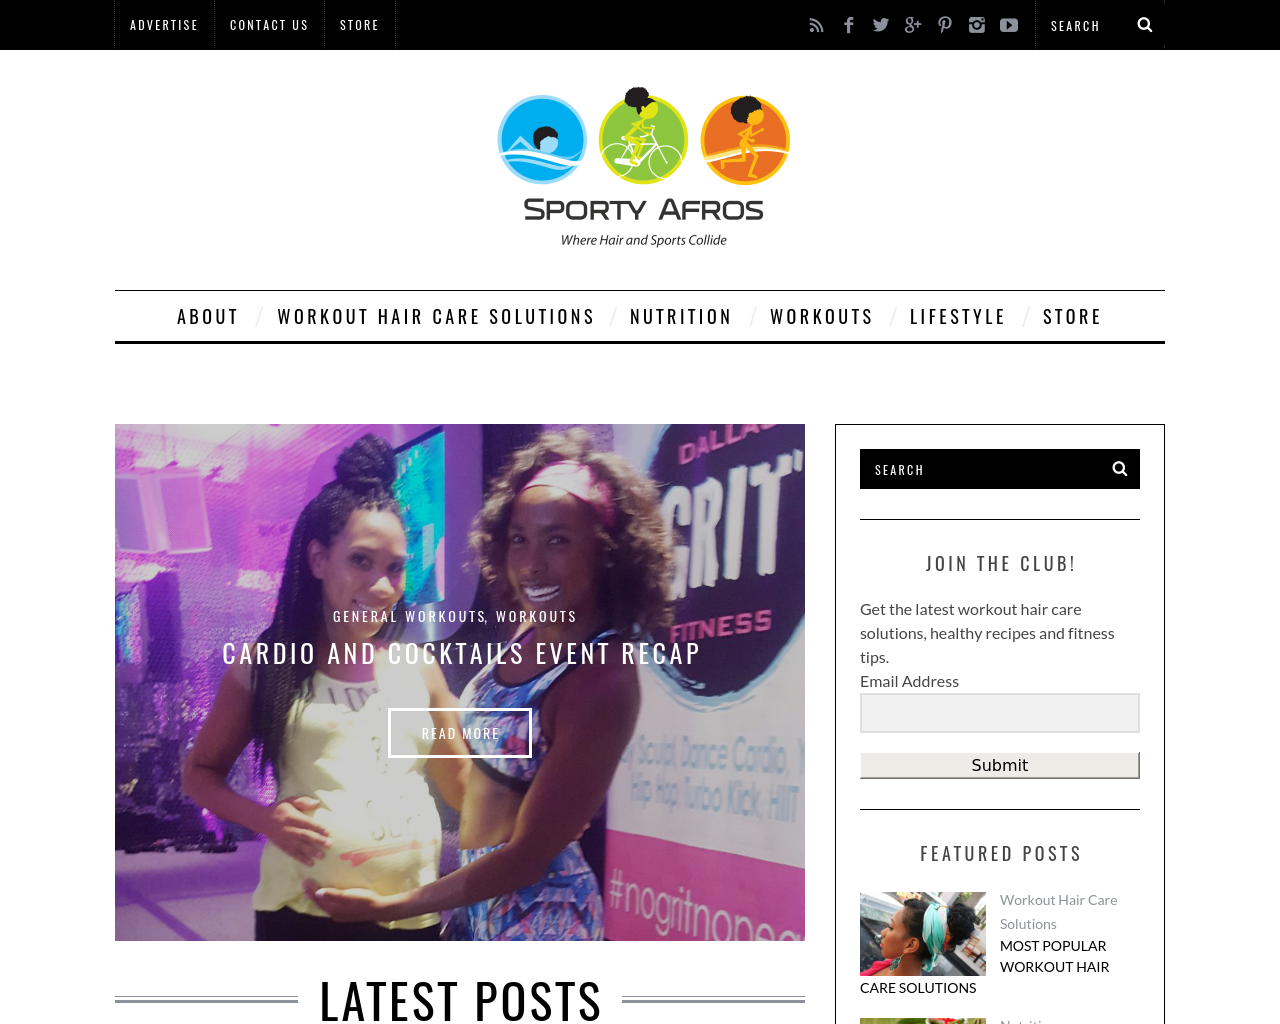 Sporty-Afros-Advertising-Reviews-Pricing